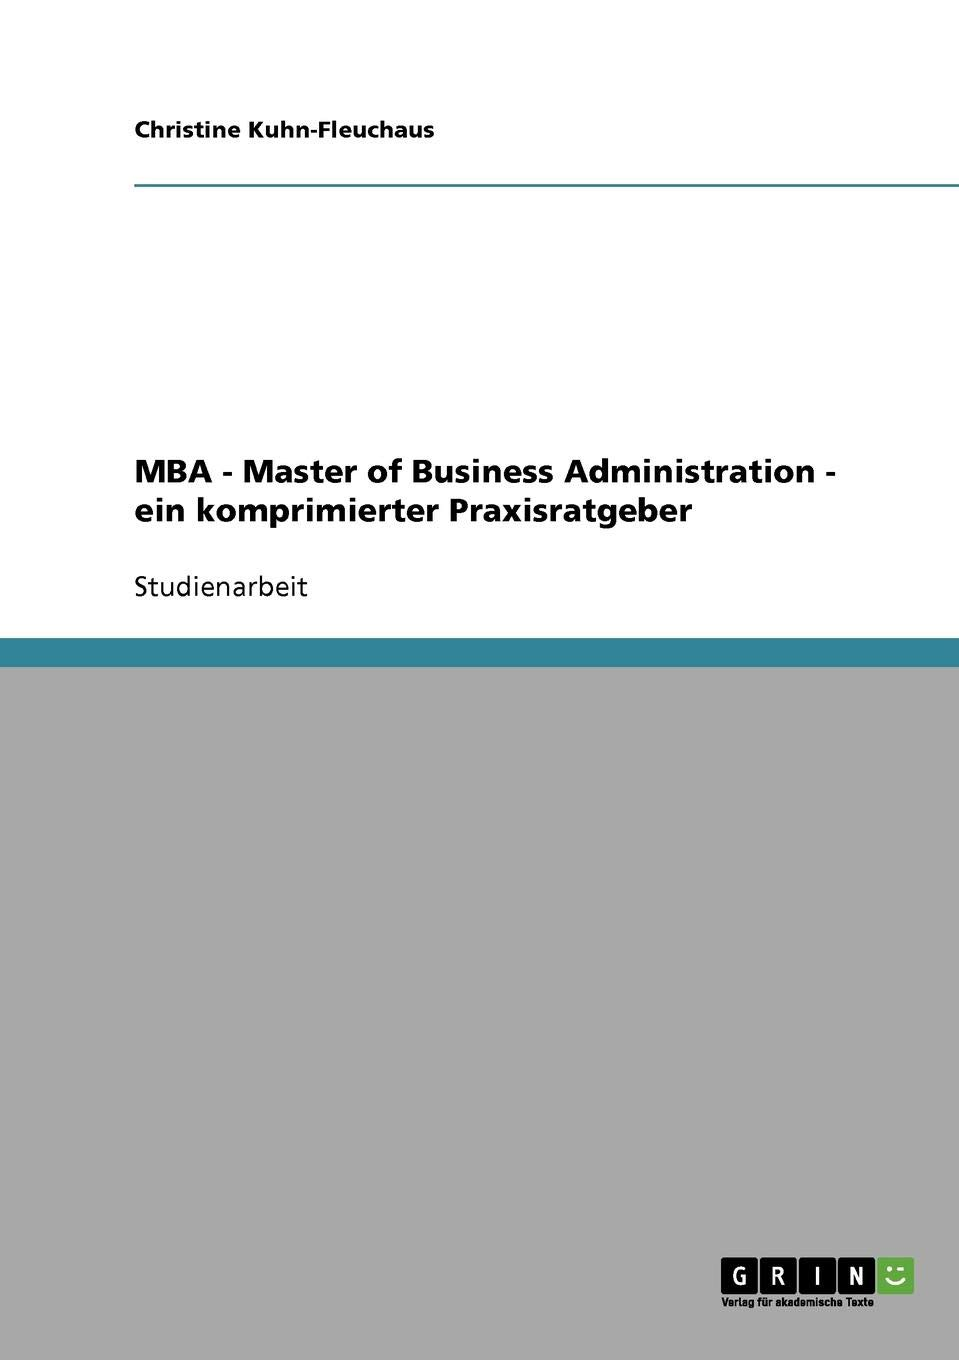 MBA Master of Business Administration. Ein komprimierter Praxisratgeber (German Edition)